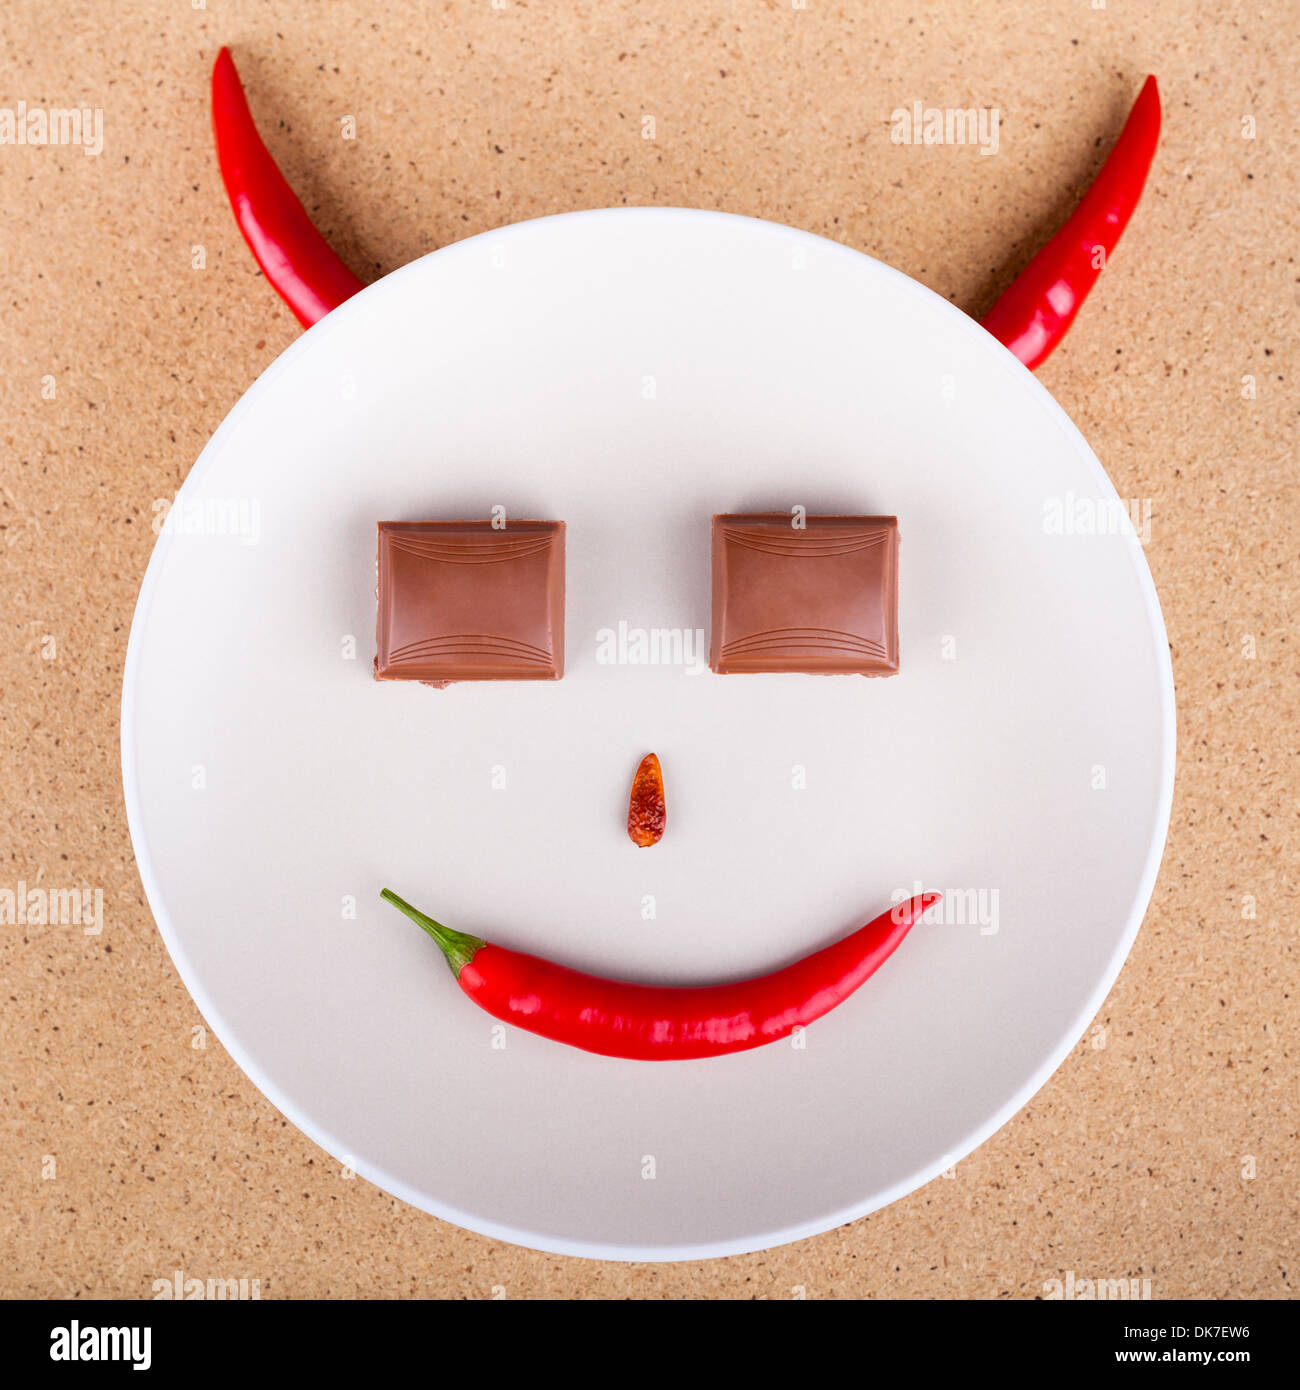 Chili pepper smiling face with chocolate eyes on plate, over wooden background. - Stock Image